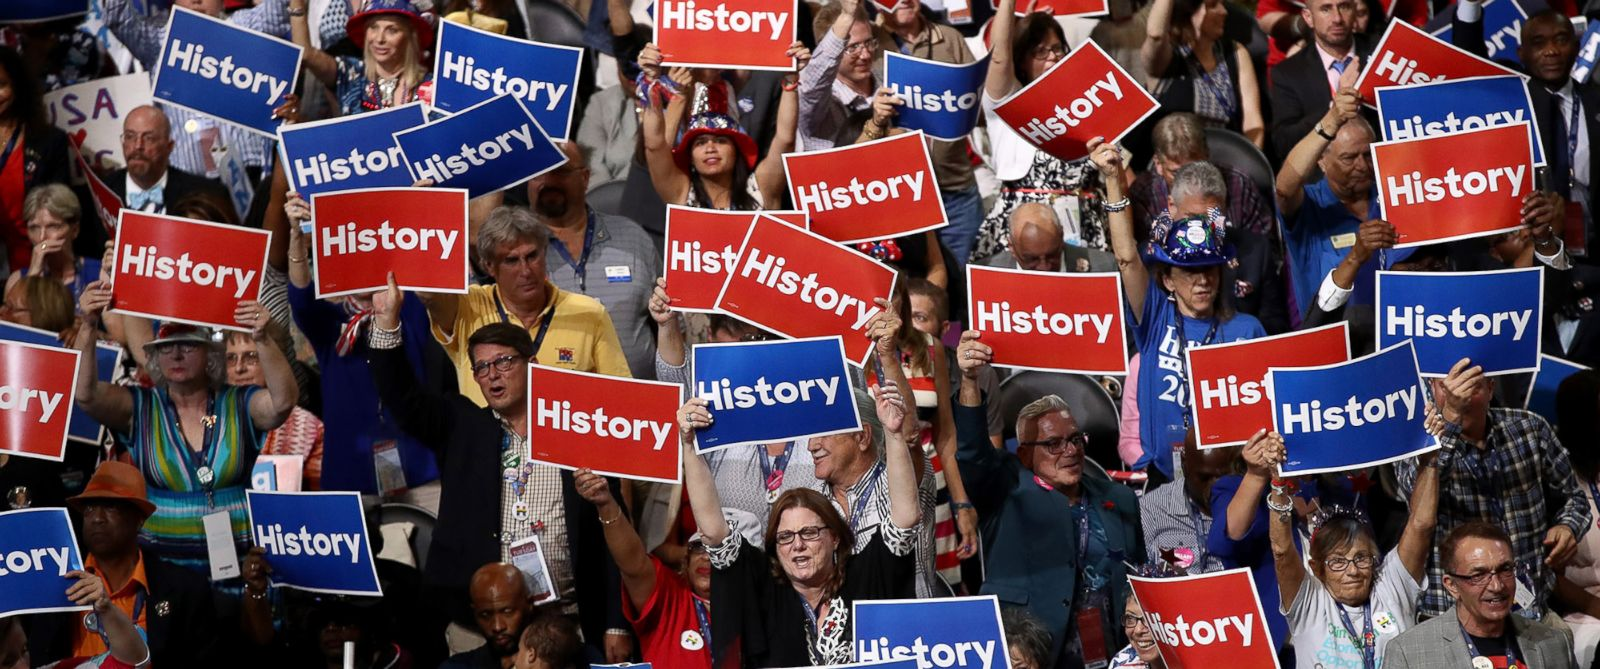 PHOTO: Delegates hold up signs and cheer on the second day of the Democratic National Convention at the Wells Fargo Center, July 26, 2016 in Philadelphia.